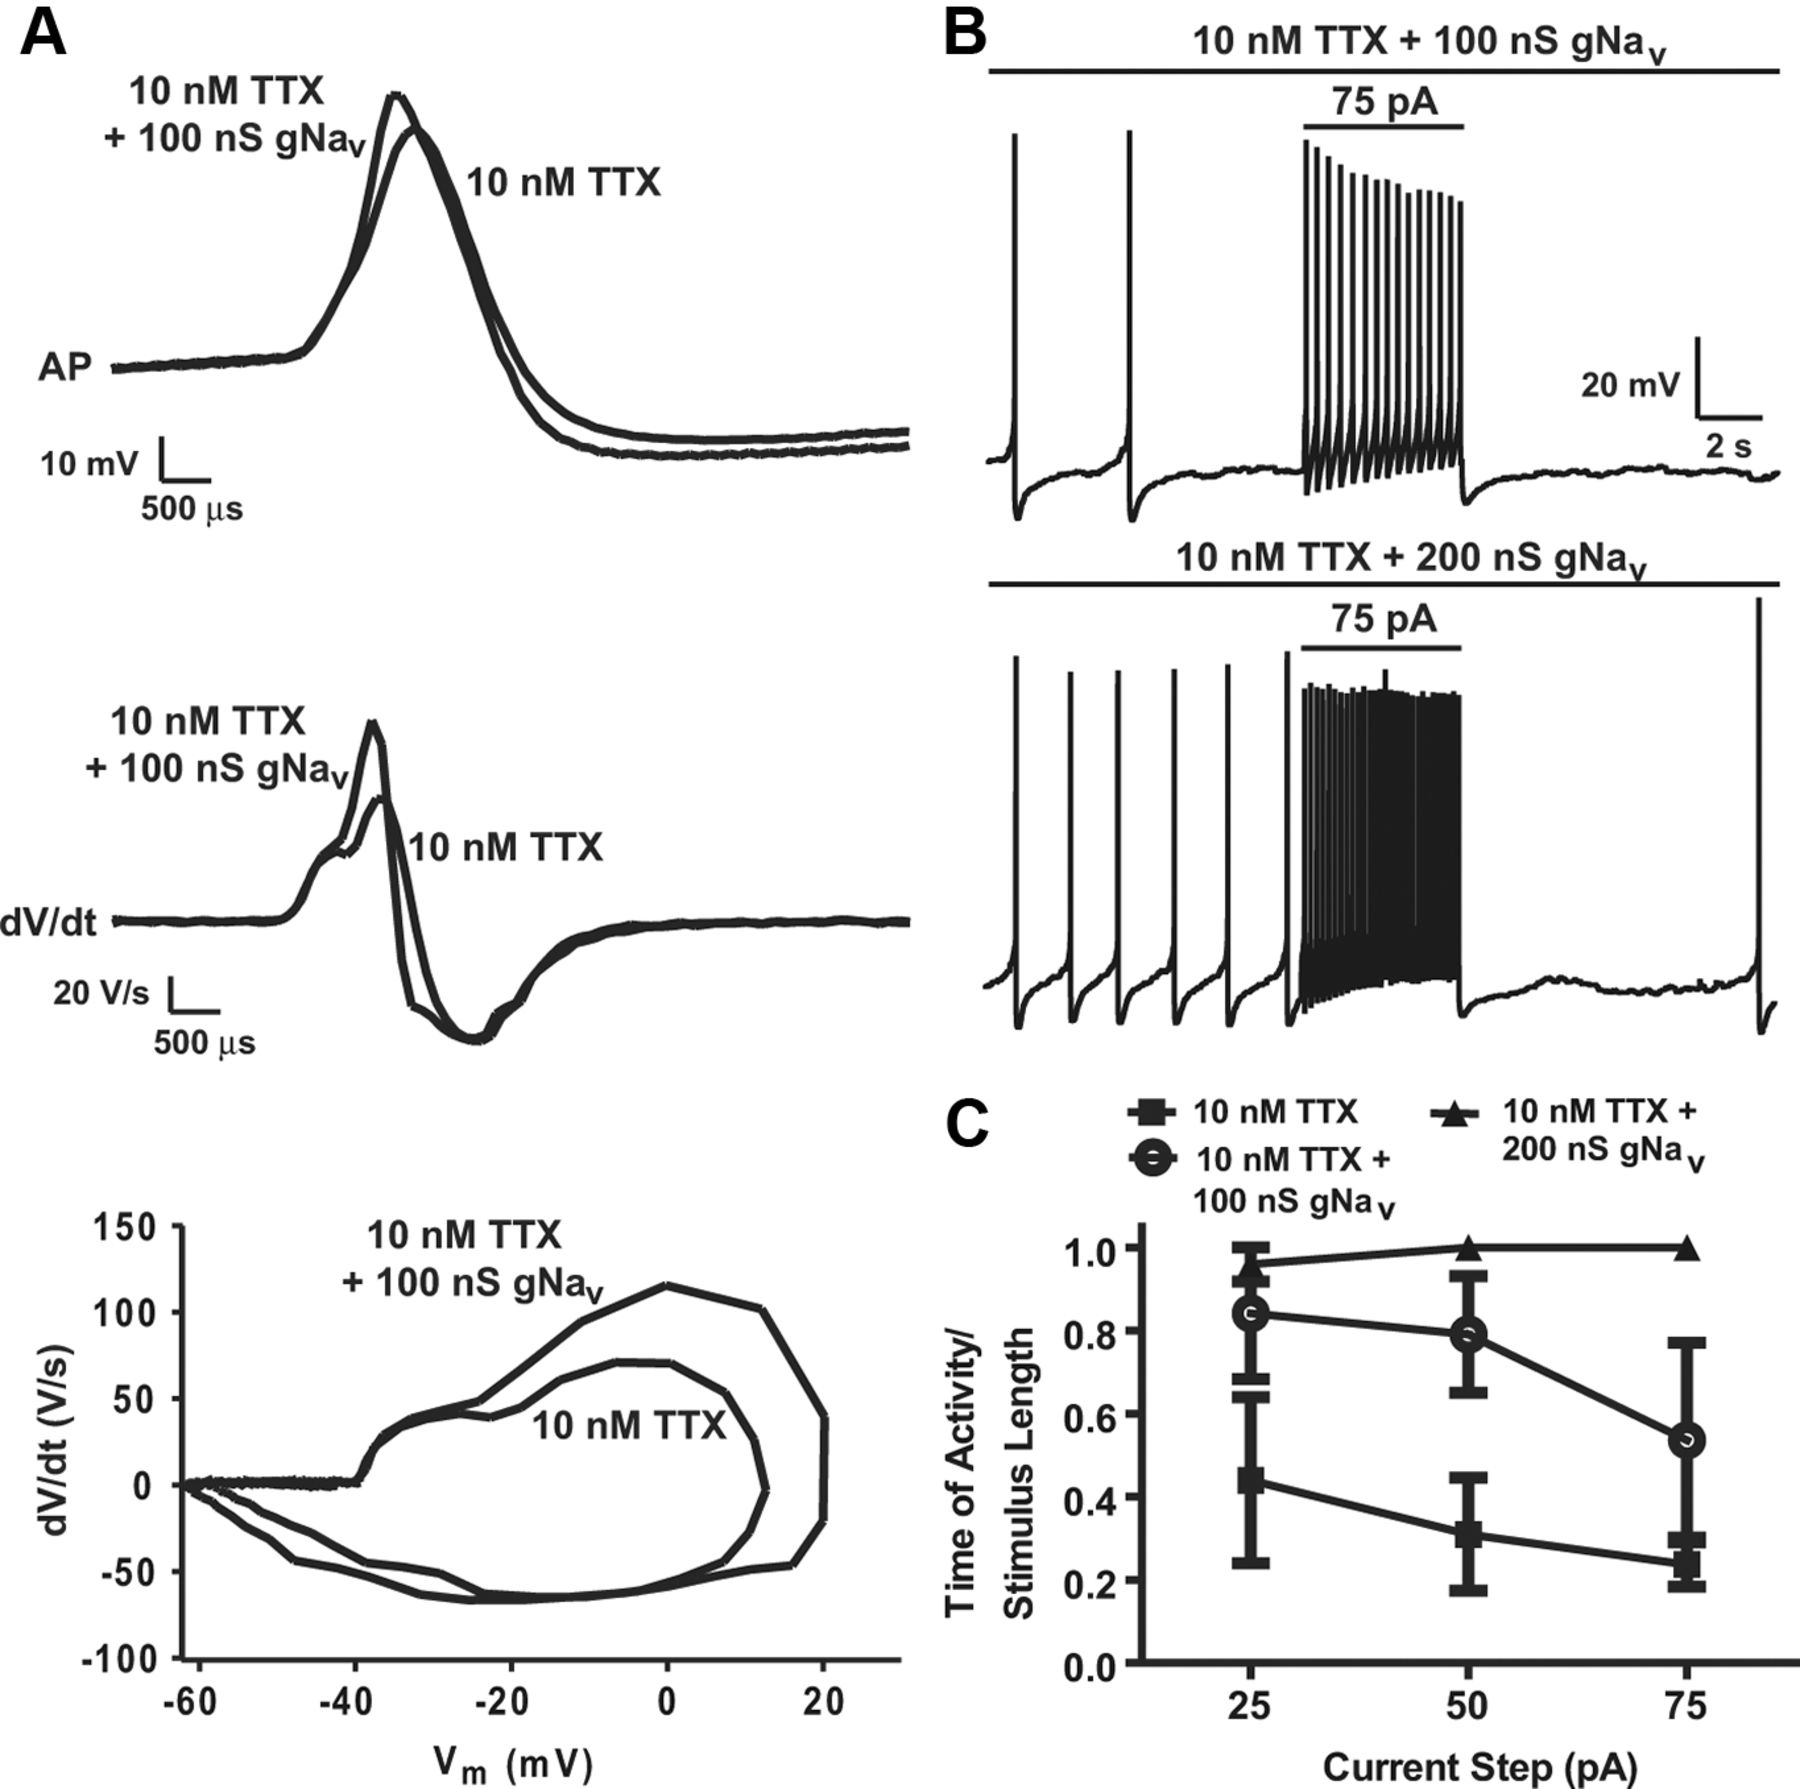 Pacemaker Rate and Depolarization Block in Nigral Dopamine